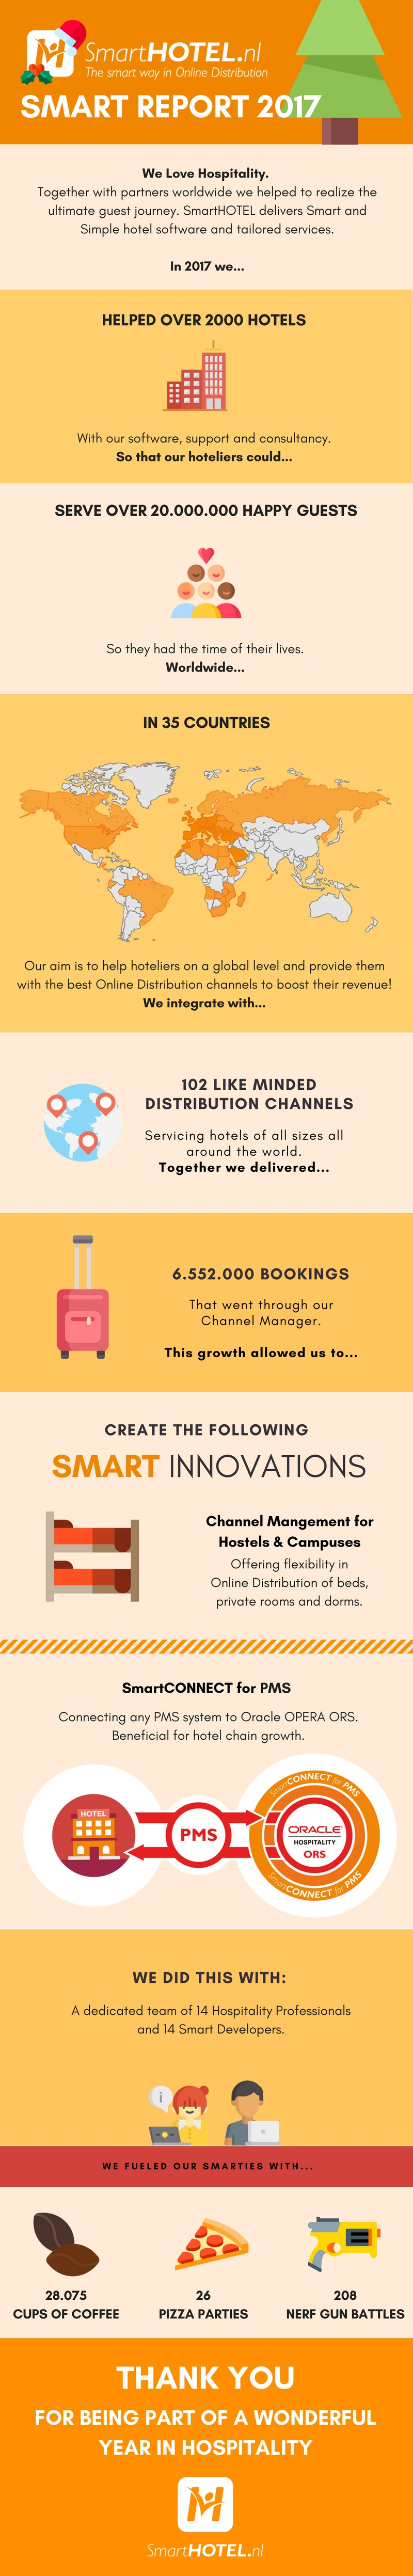 smarthotel annual report 2017